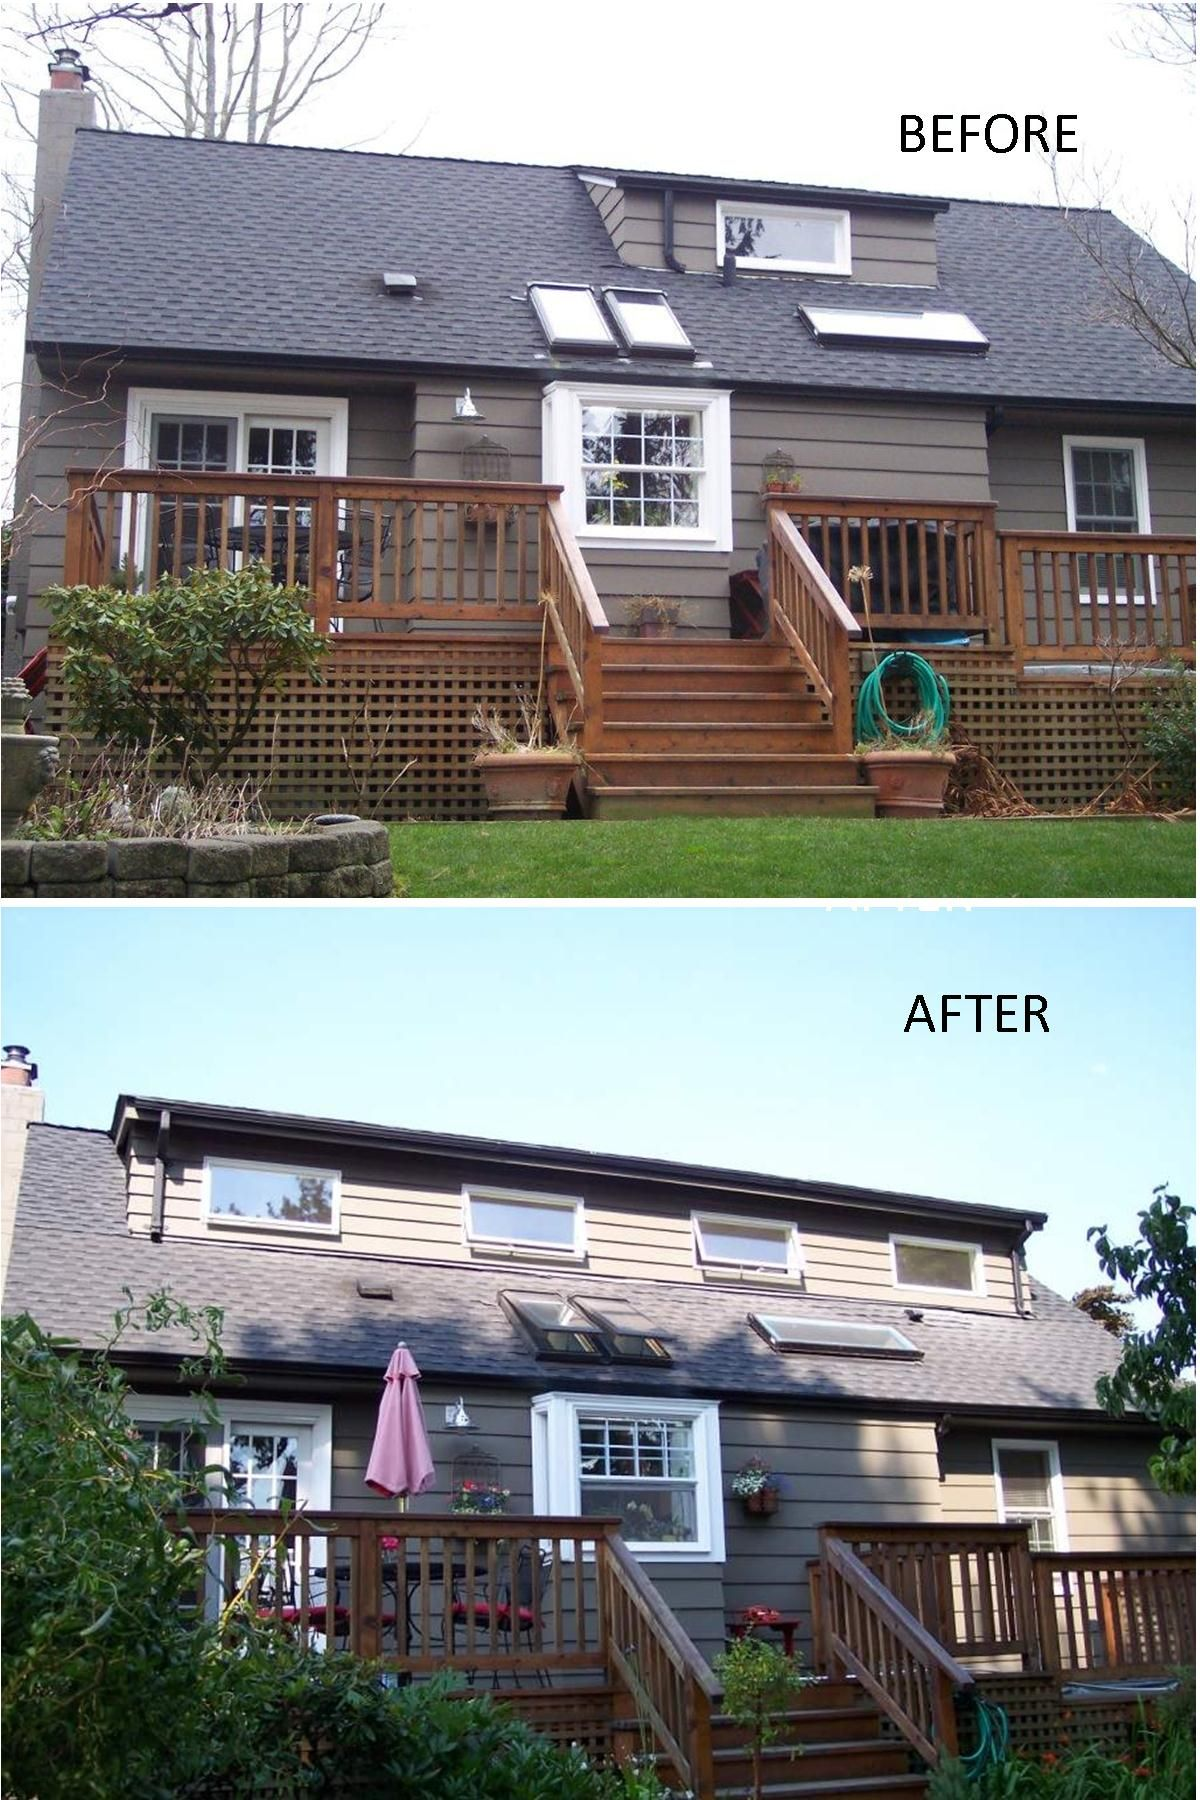 Before And After Shot Of A 30 Foot Shed Dormer Addition We Built